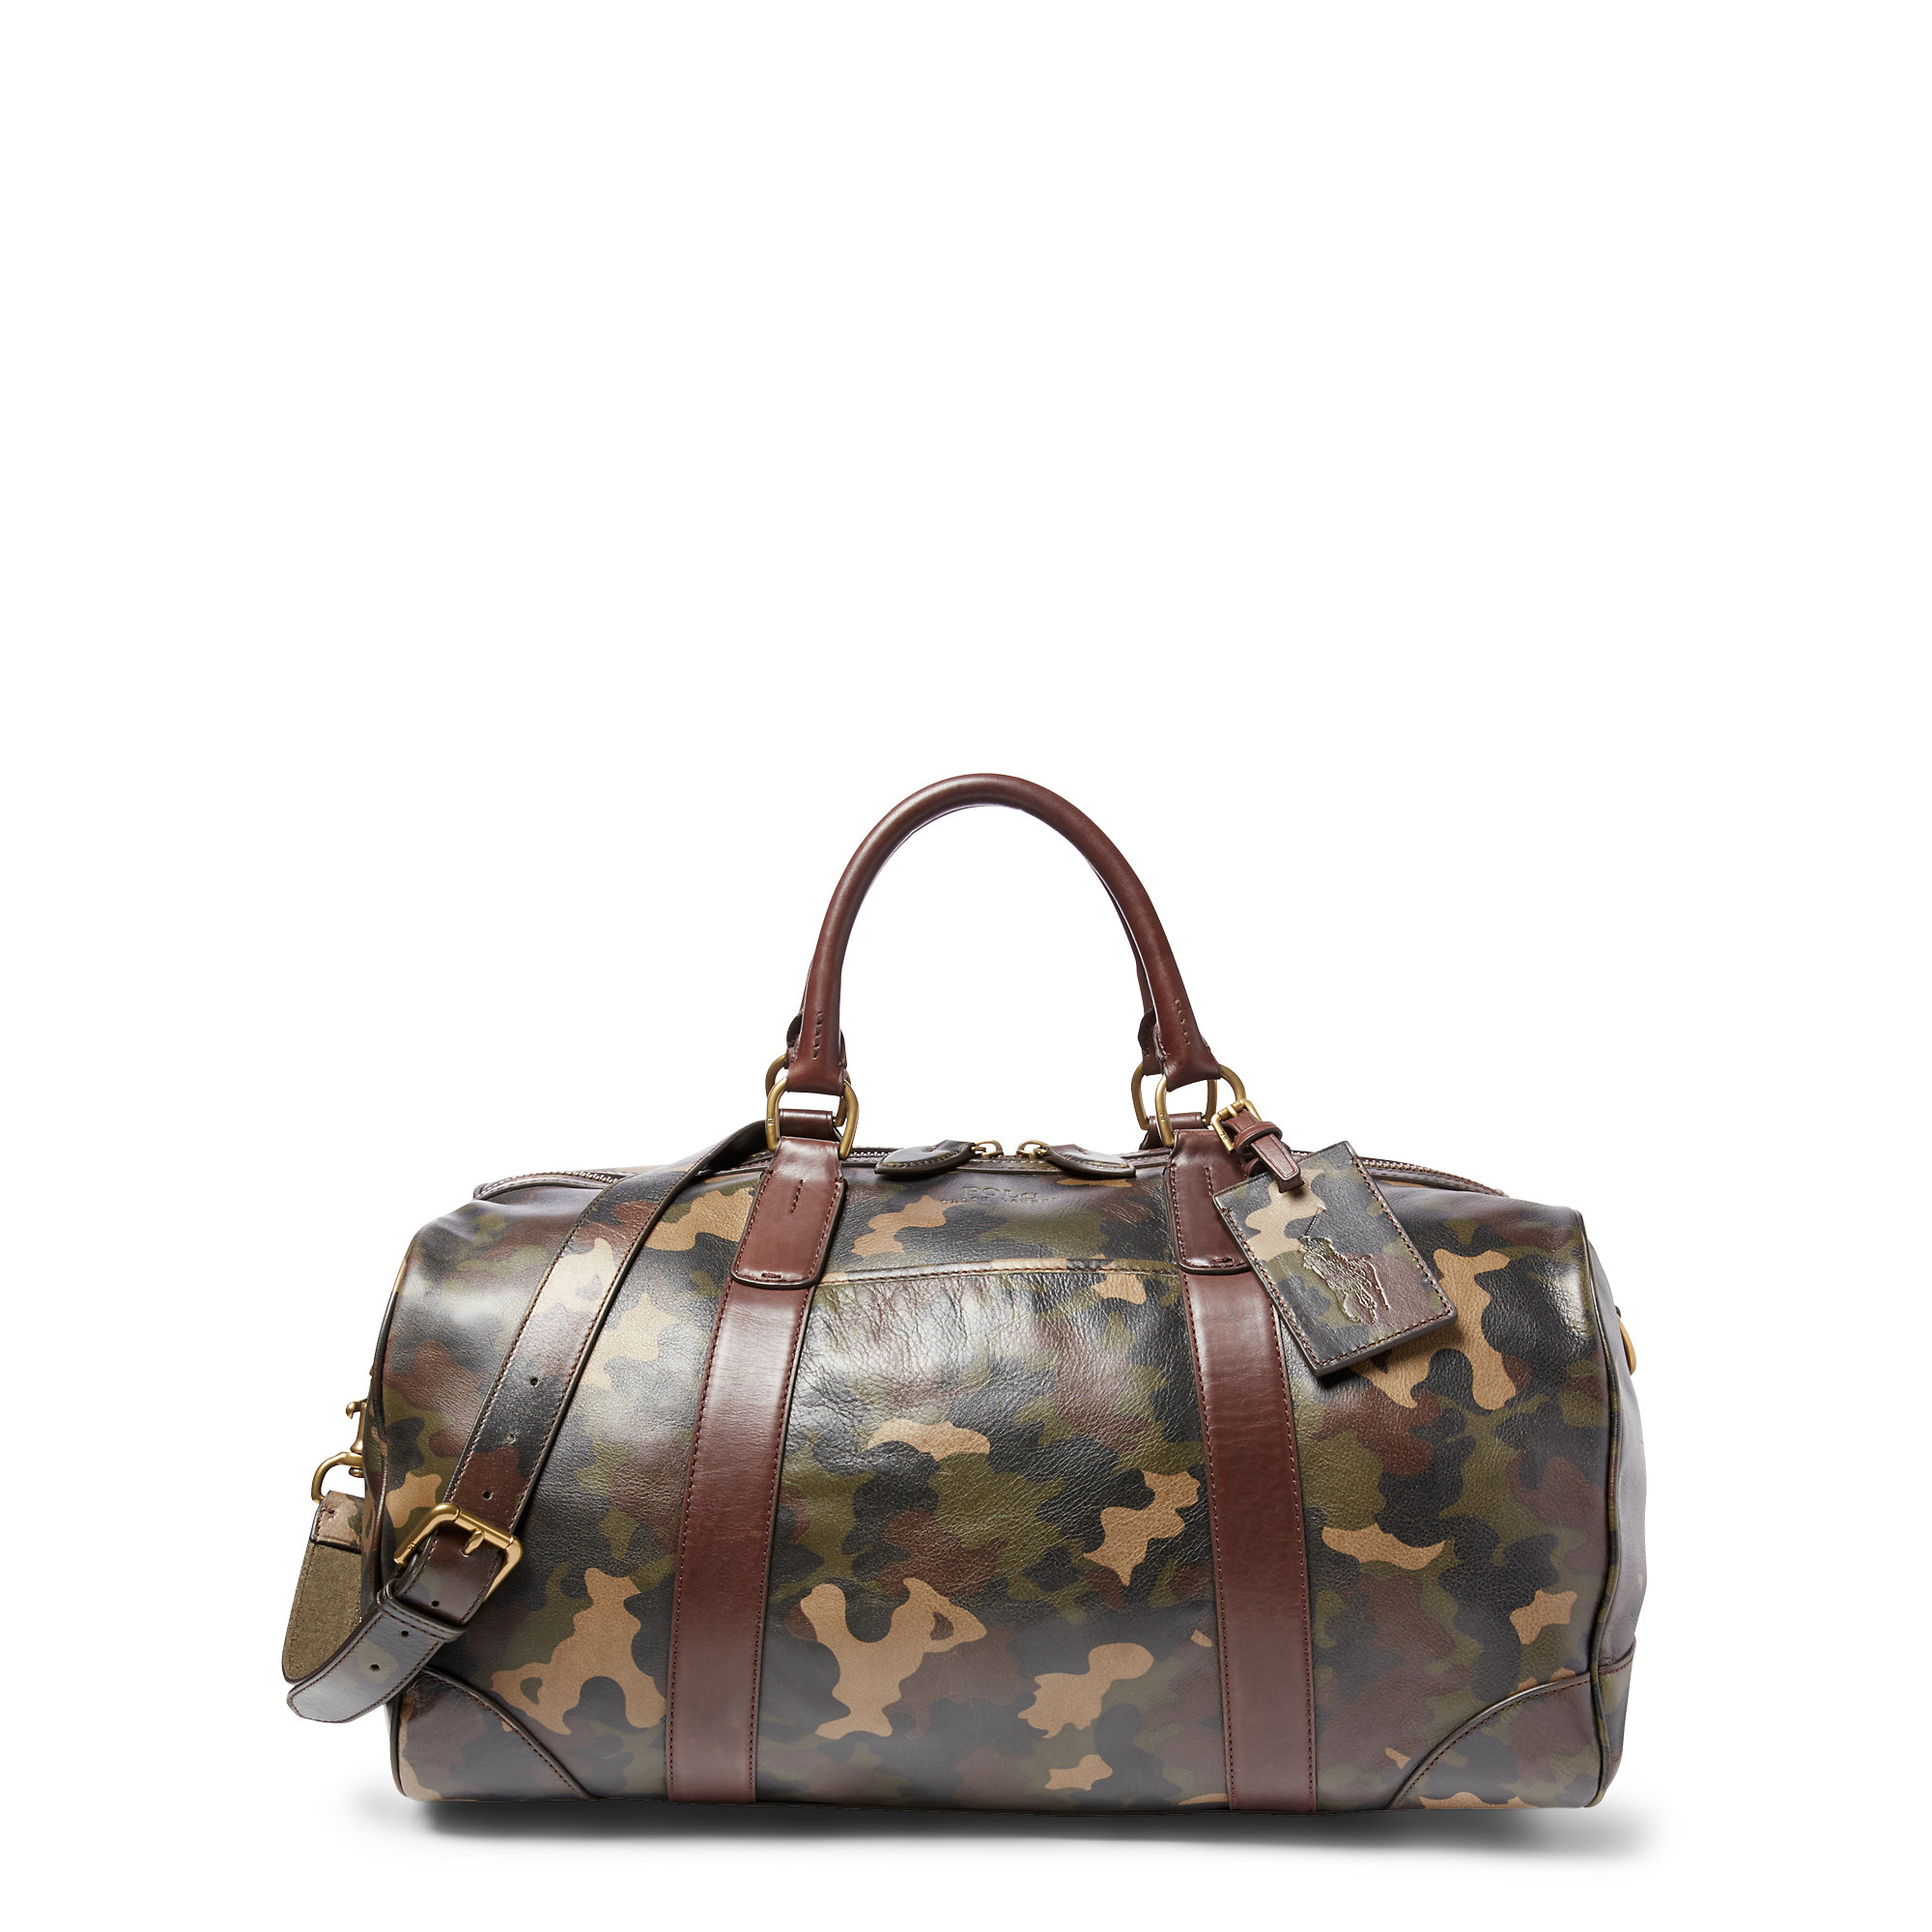 7bb6b79f1b5 Lyst - Polo Ralph Lauren Camouflage Leather Duffel Bag in Gray for Men